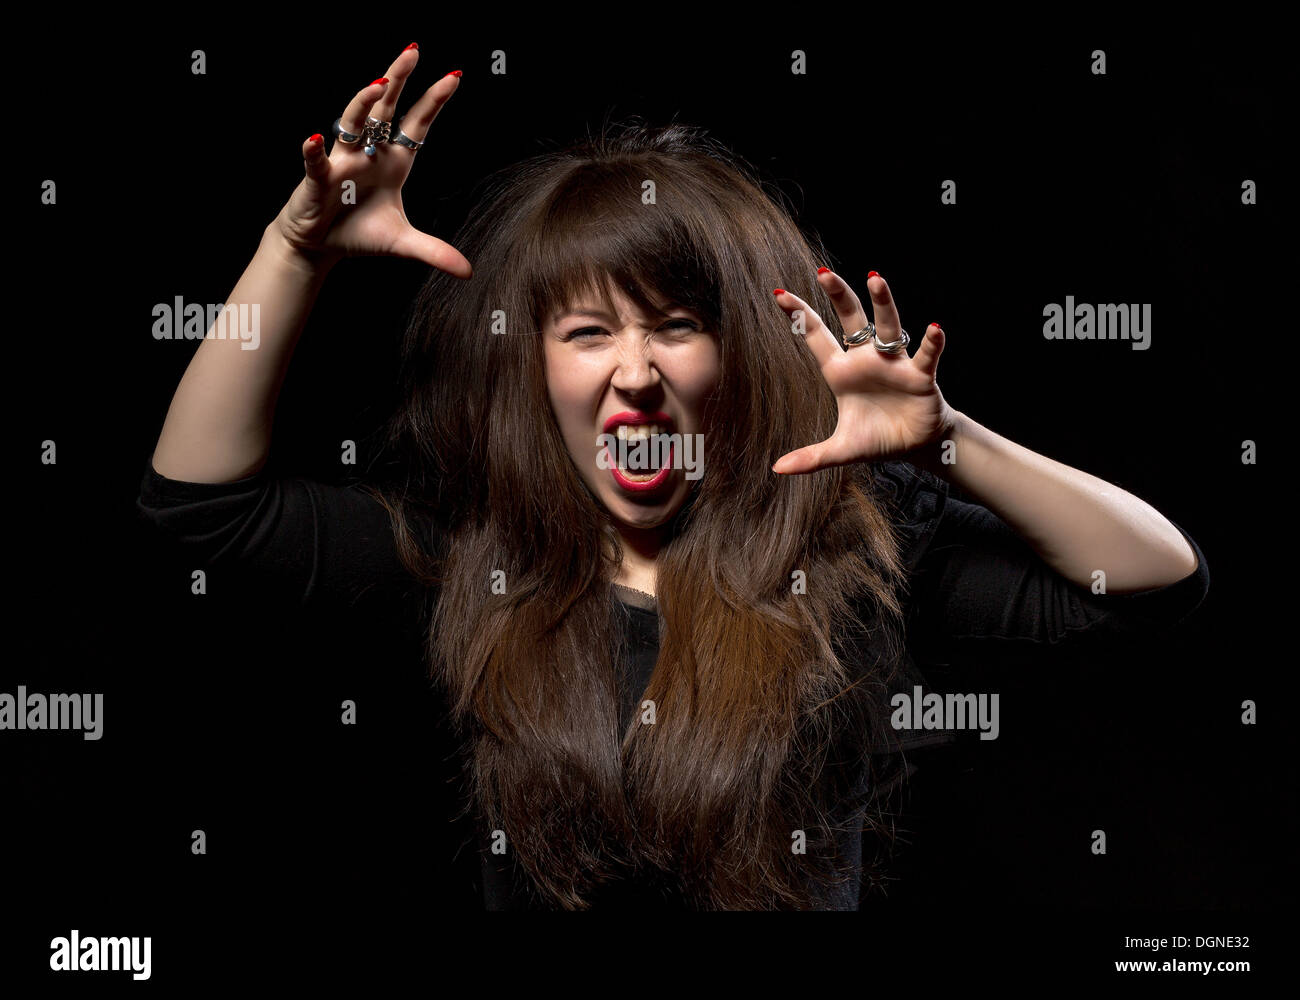 Woman throwing a temper tantrum screaming in anger and clawing the air with her hands on a dark background - Stock Image